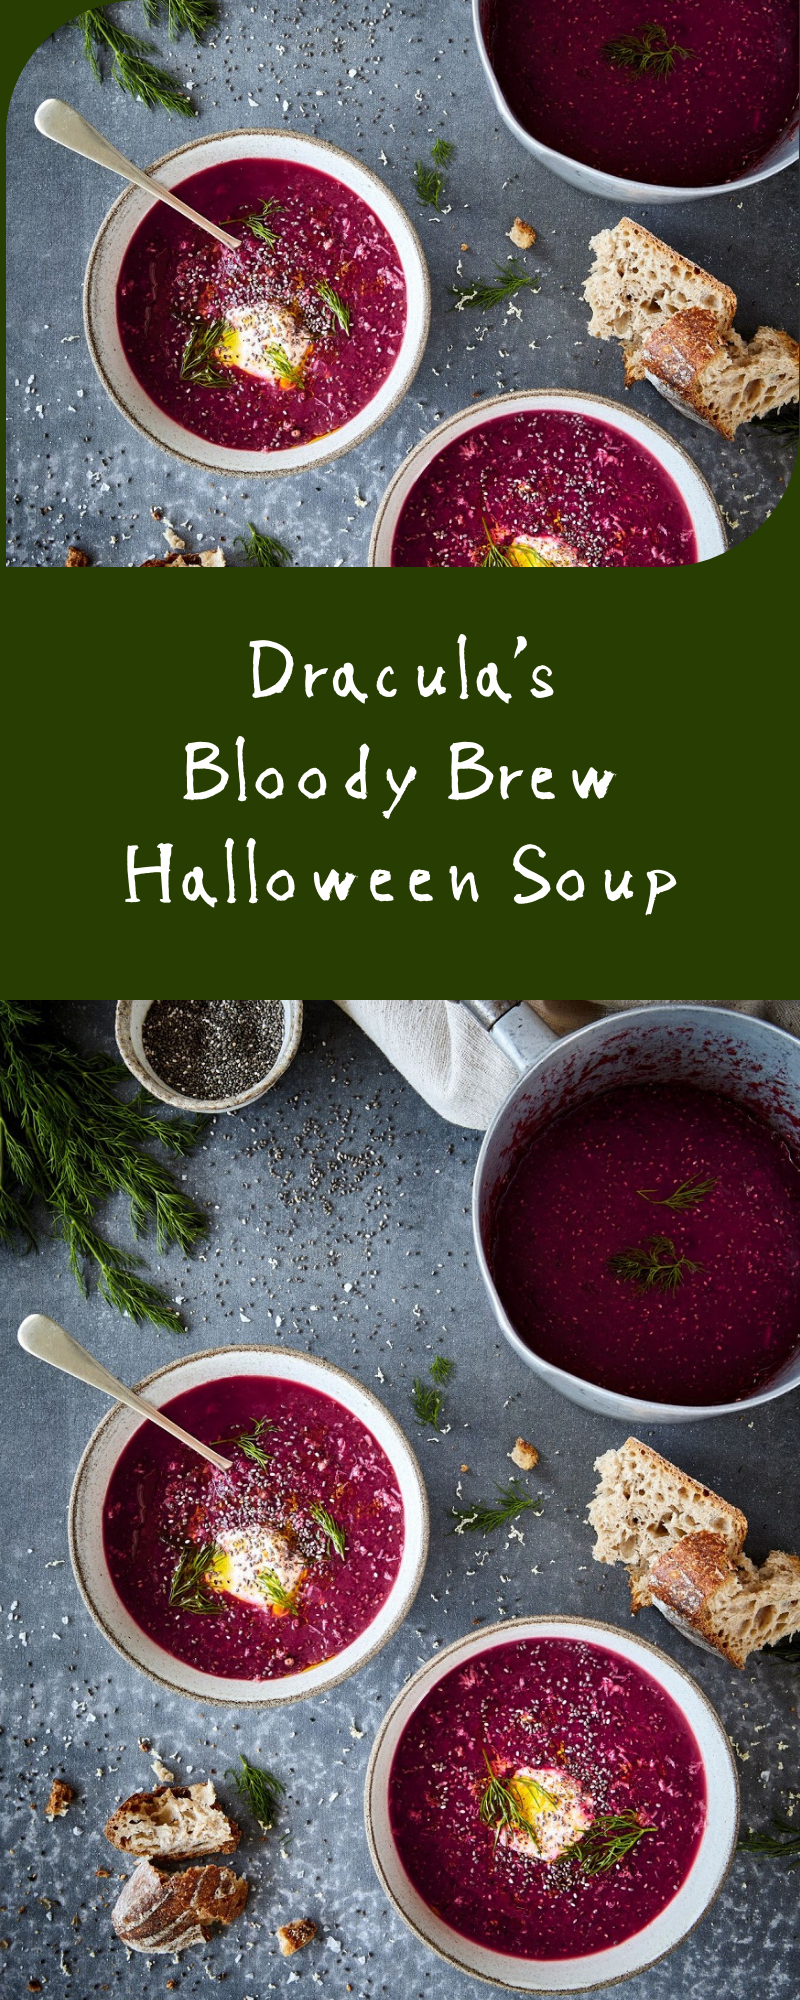 How To Make Dracula's Bloody Brew Halloween Soup